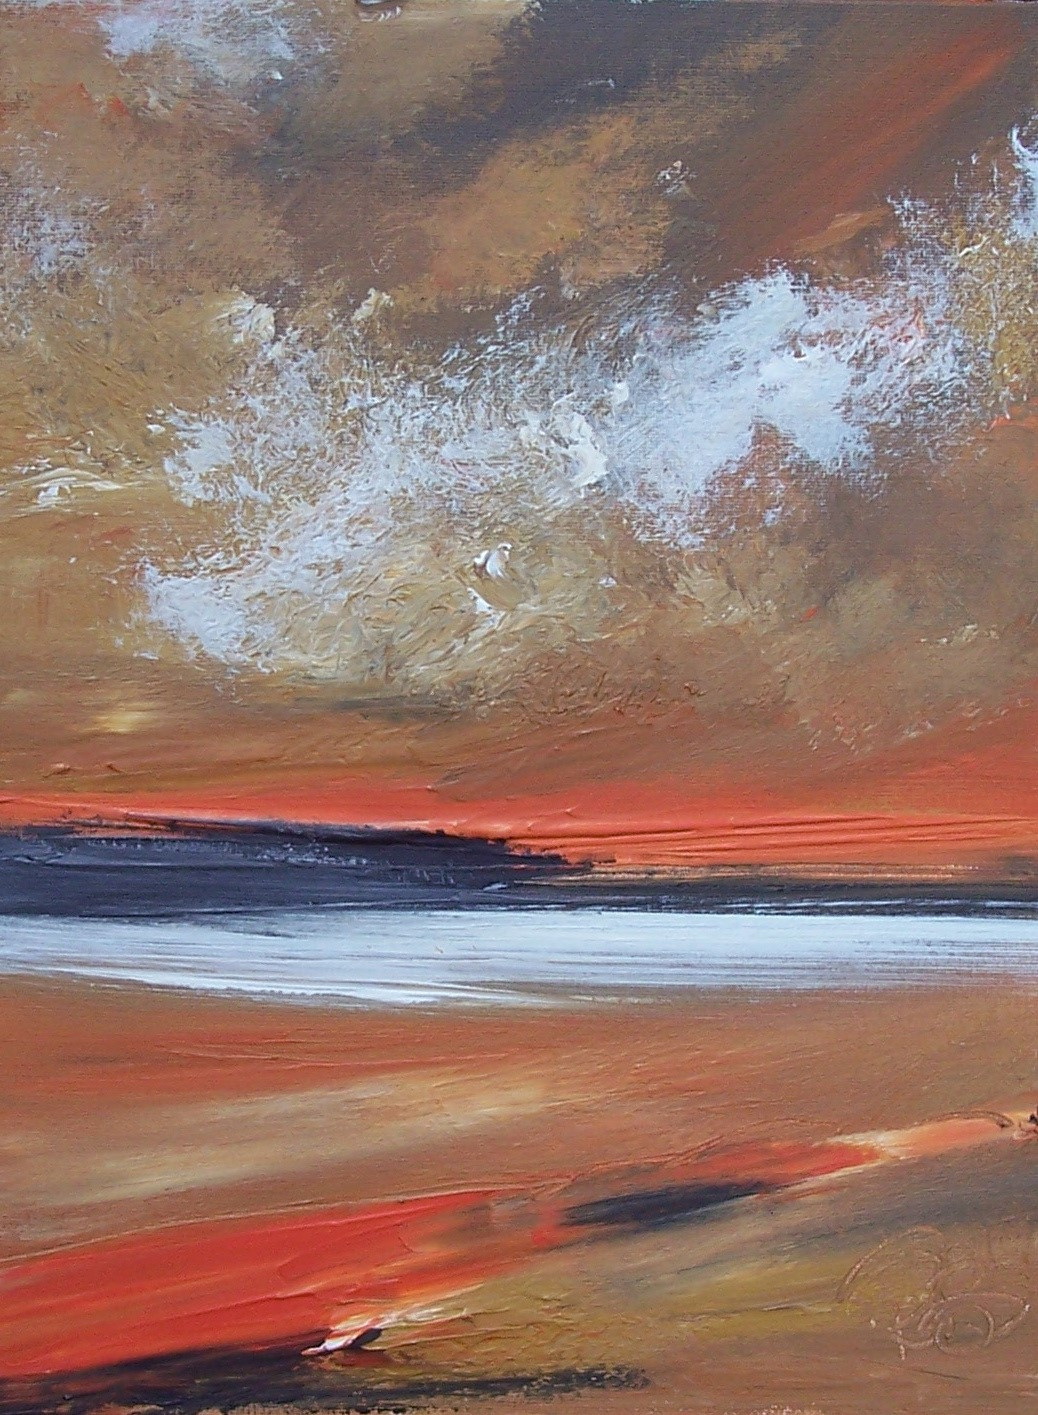 'Night beckoning' by artist Rosanne Barr